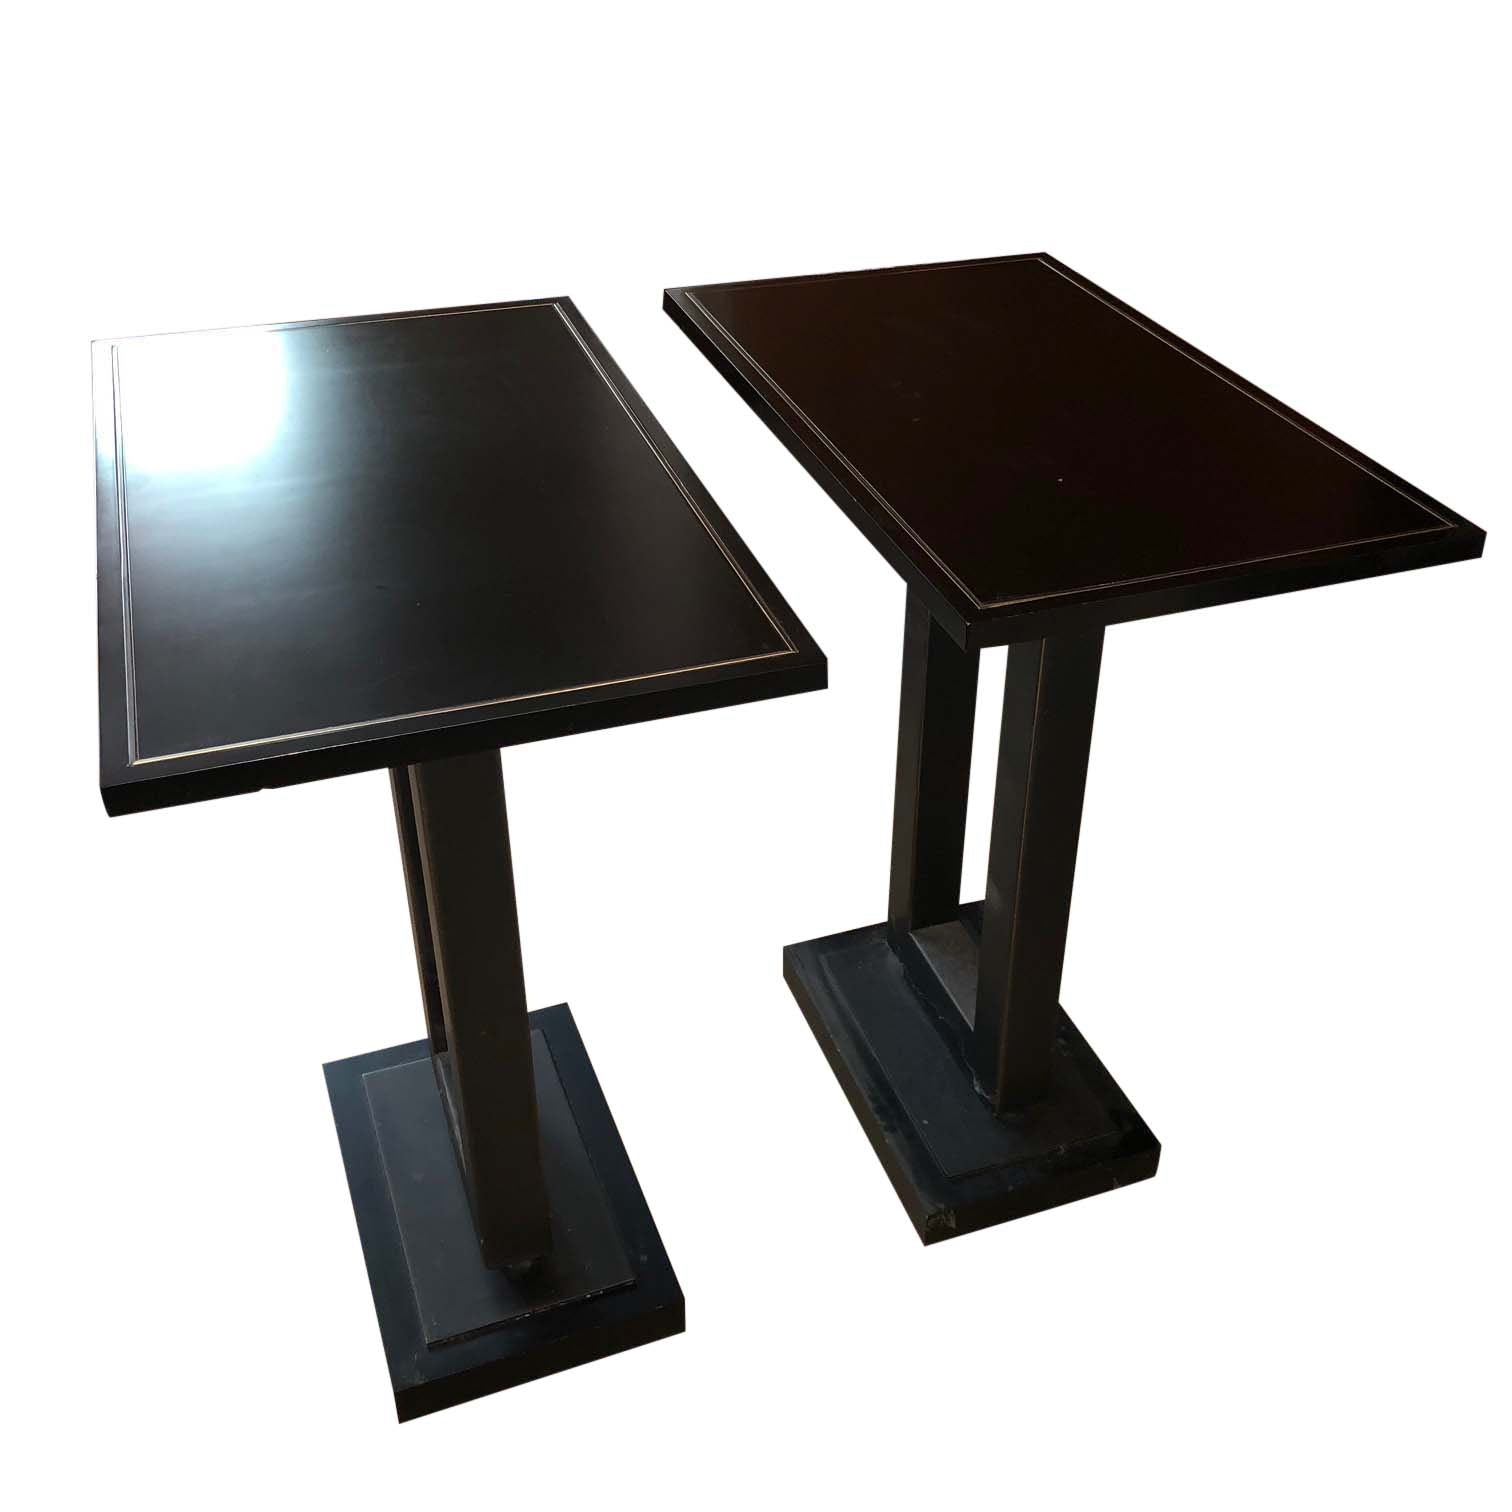 Black Deco Revival Style Pedestal Side Tables